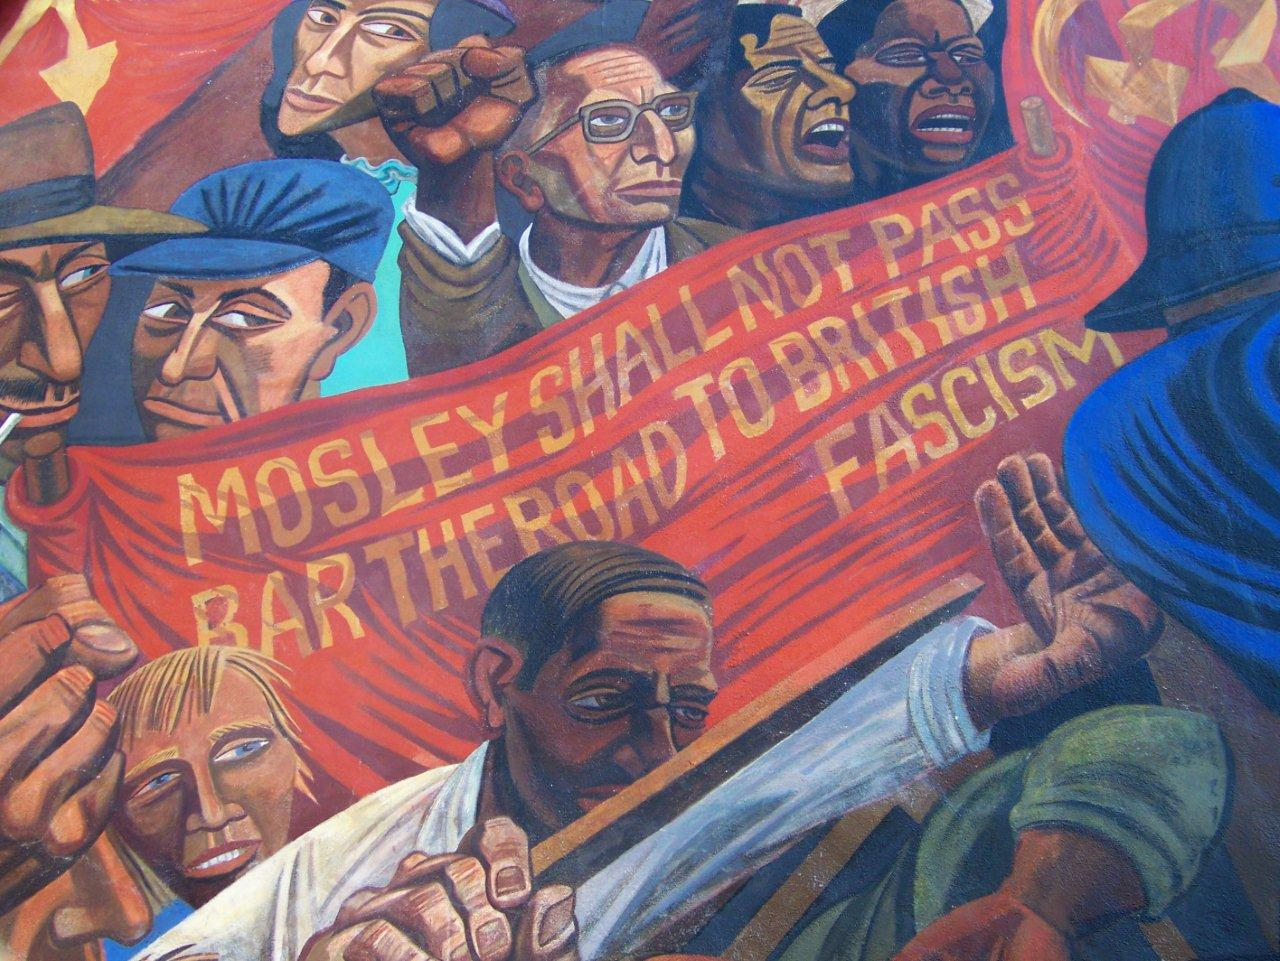 London 2 casting bells fighting fascism hanging pirates for Battle of cable street mural